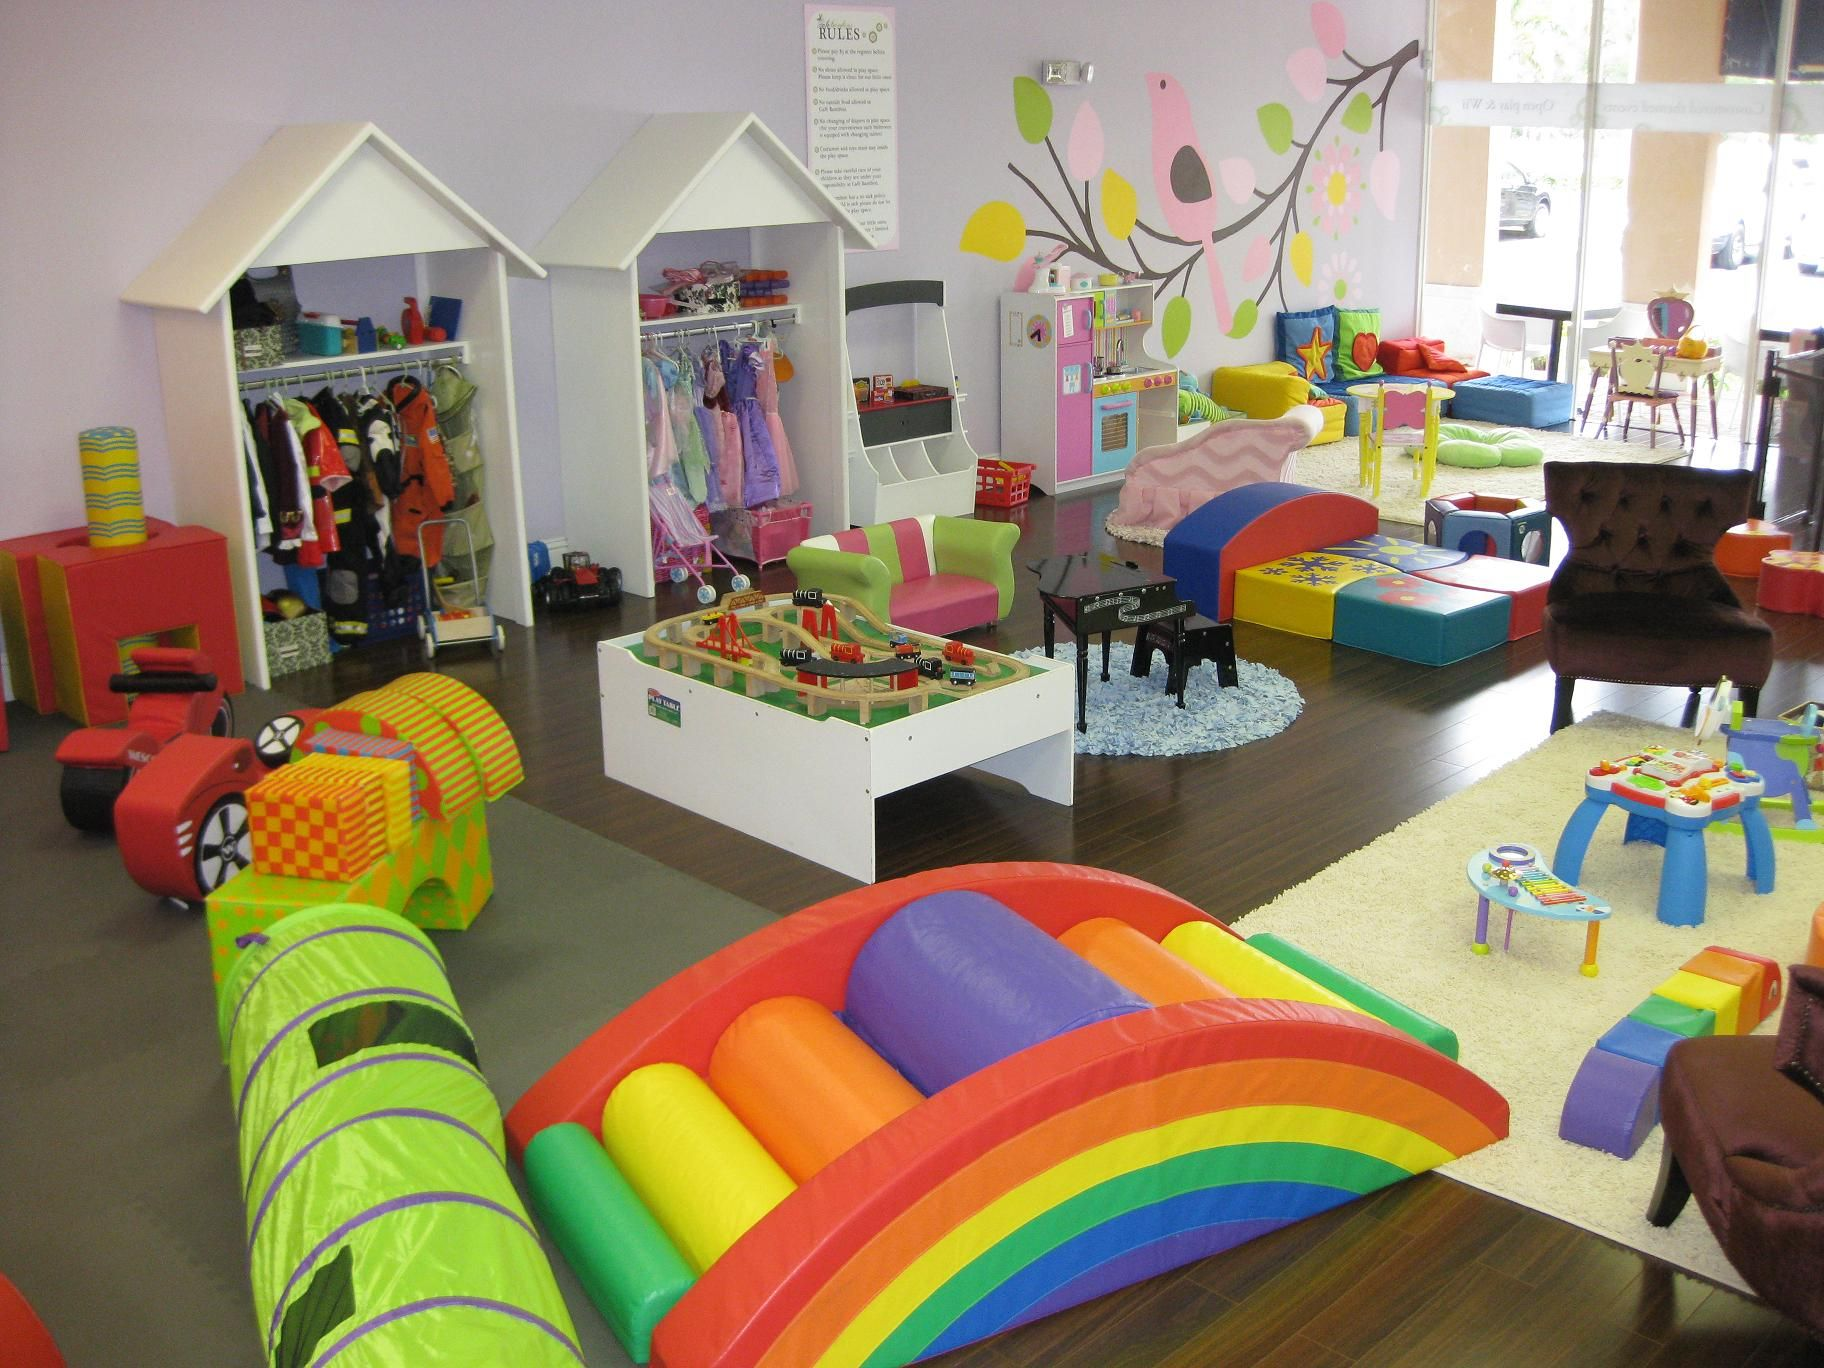 Play room kids kids kids pinterest plays room and for Playroom floor ideas